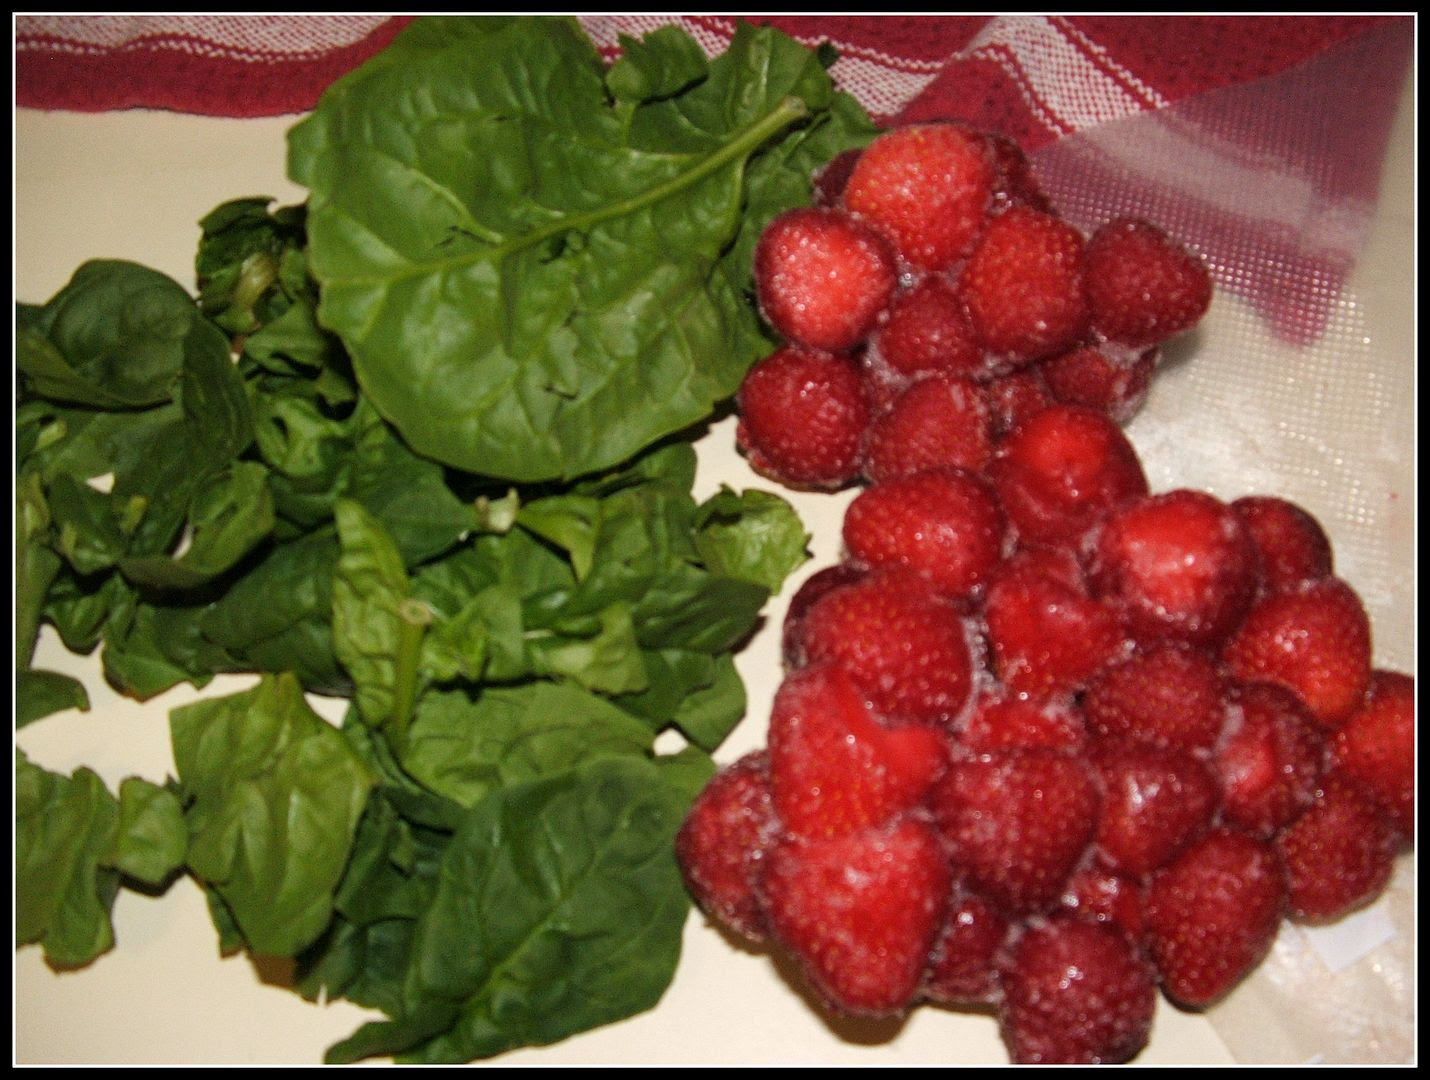 Strawberry Spinach Smoothie by Angie Ouellette-Tower for godsgrowinggarden.com photo 001_zps901345bf.jpg